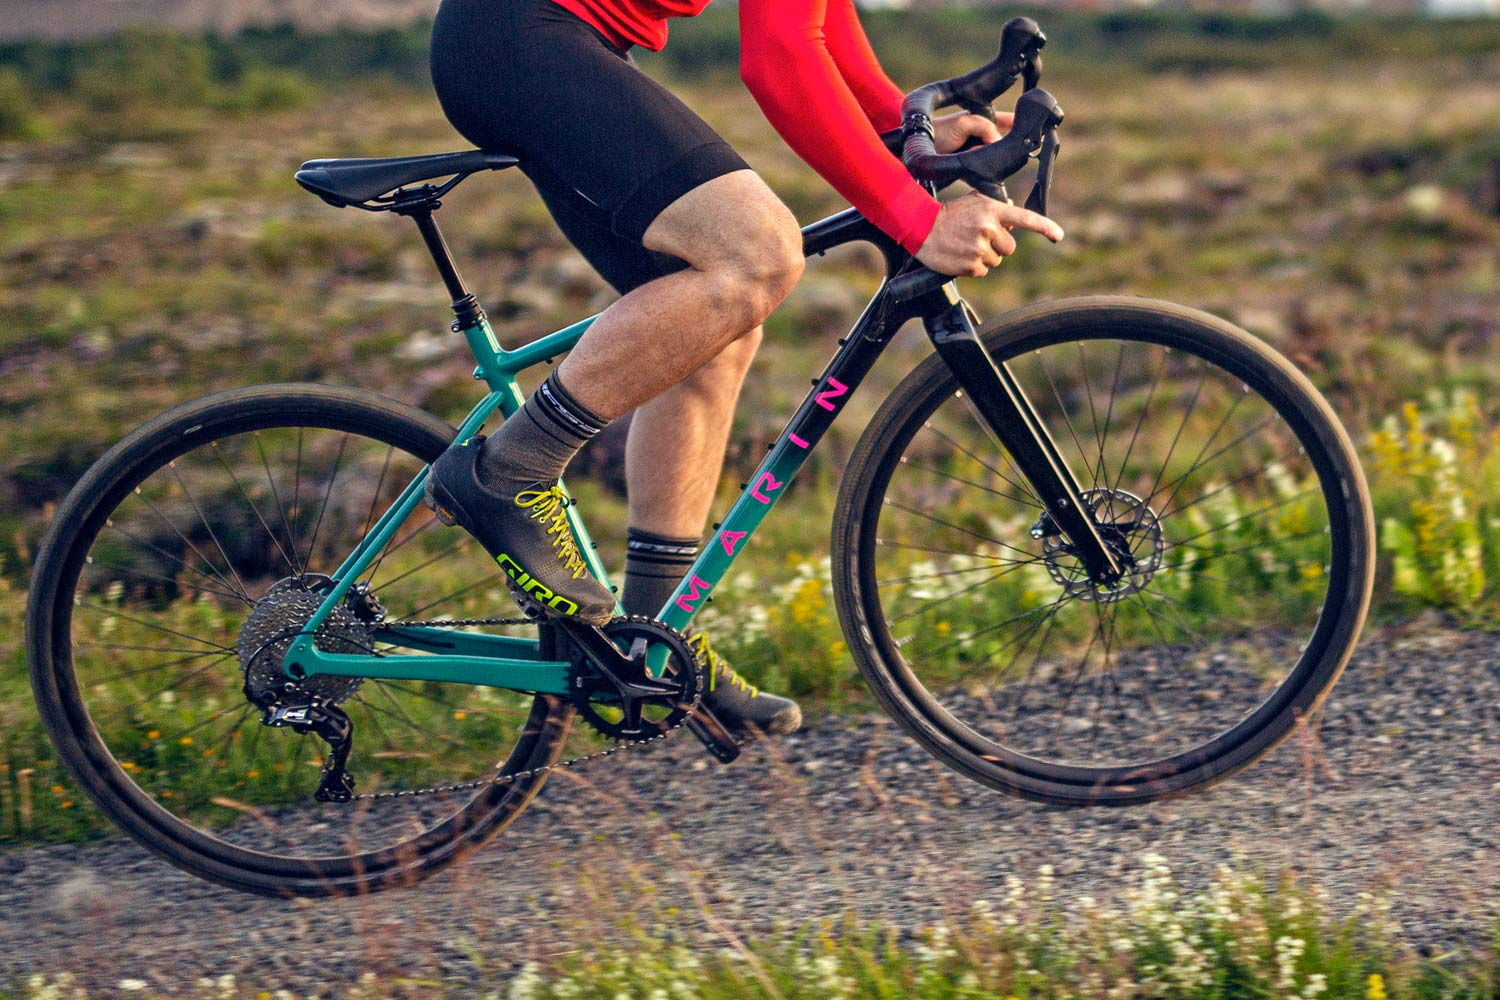 2020 Marin gravel and all-road commuter bikes, carbon alloy steel